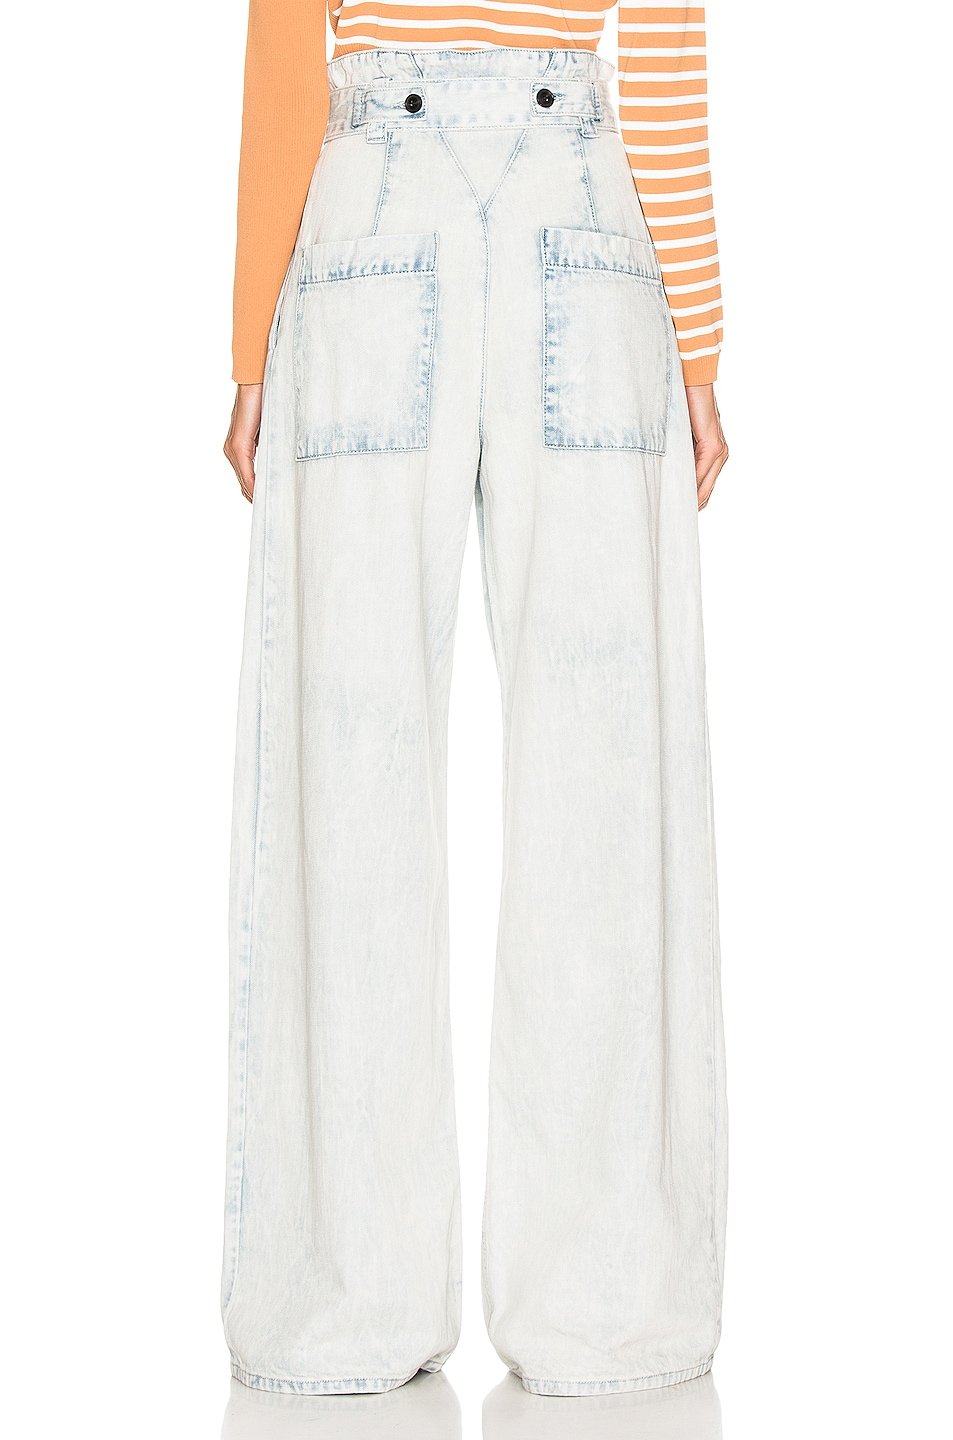 Image 3 of Proenza Schouler Belted Pant in Bleached Acid